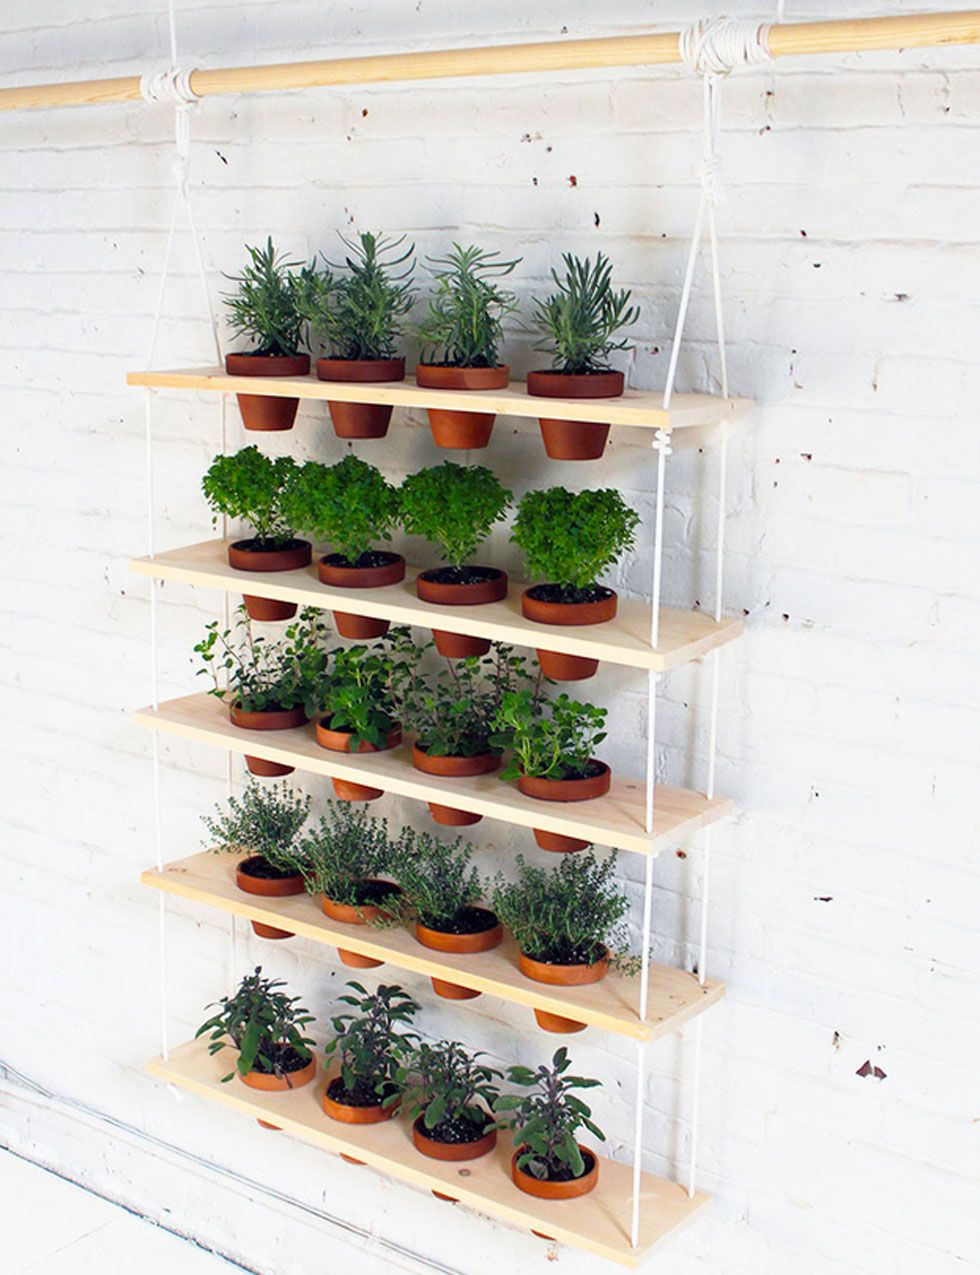 26 Creative Ways to Plant a Vertical Garden | Planters